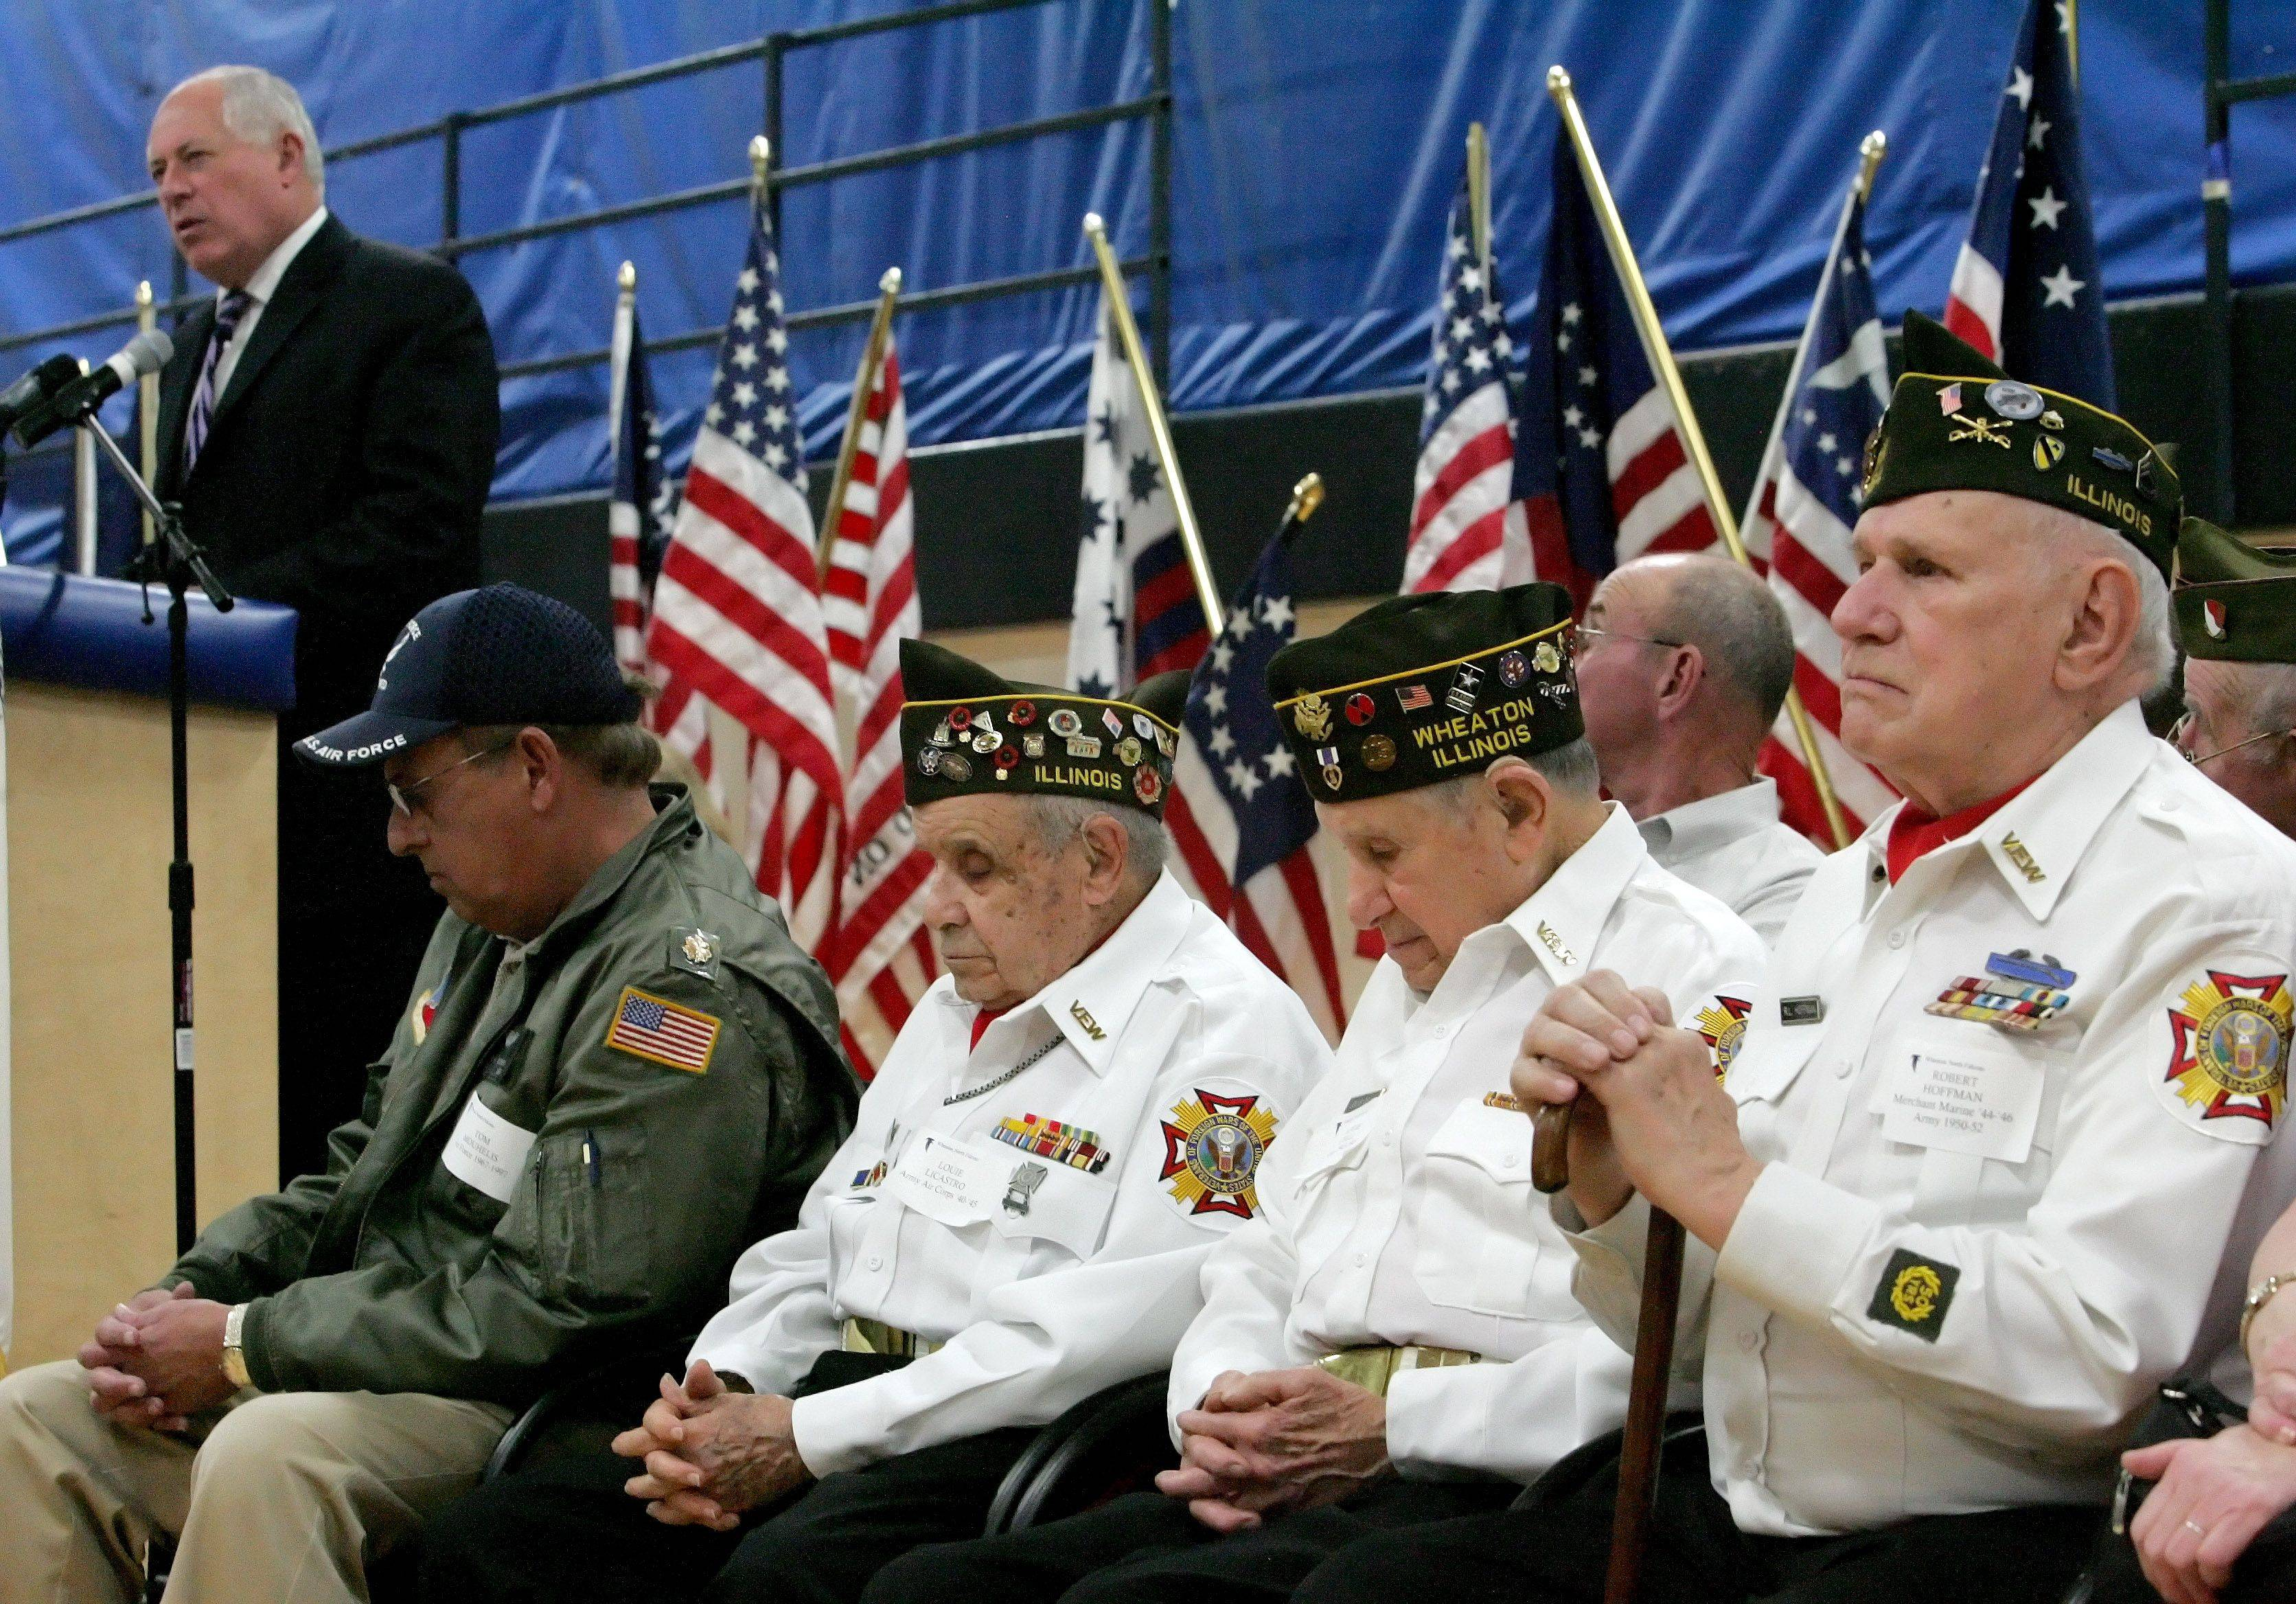 Left to right, veterans Tom Mouhelis, Louie Celli, Louie Licastro and Robert Hoffman listens as Governor Pat Quinn speaks at a Veterans Day event honoring Medal of Honor recipient Staff Sgt. Rob Miller at Wheaton North High School on Thursday.